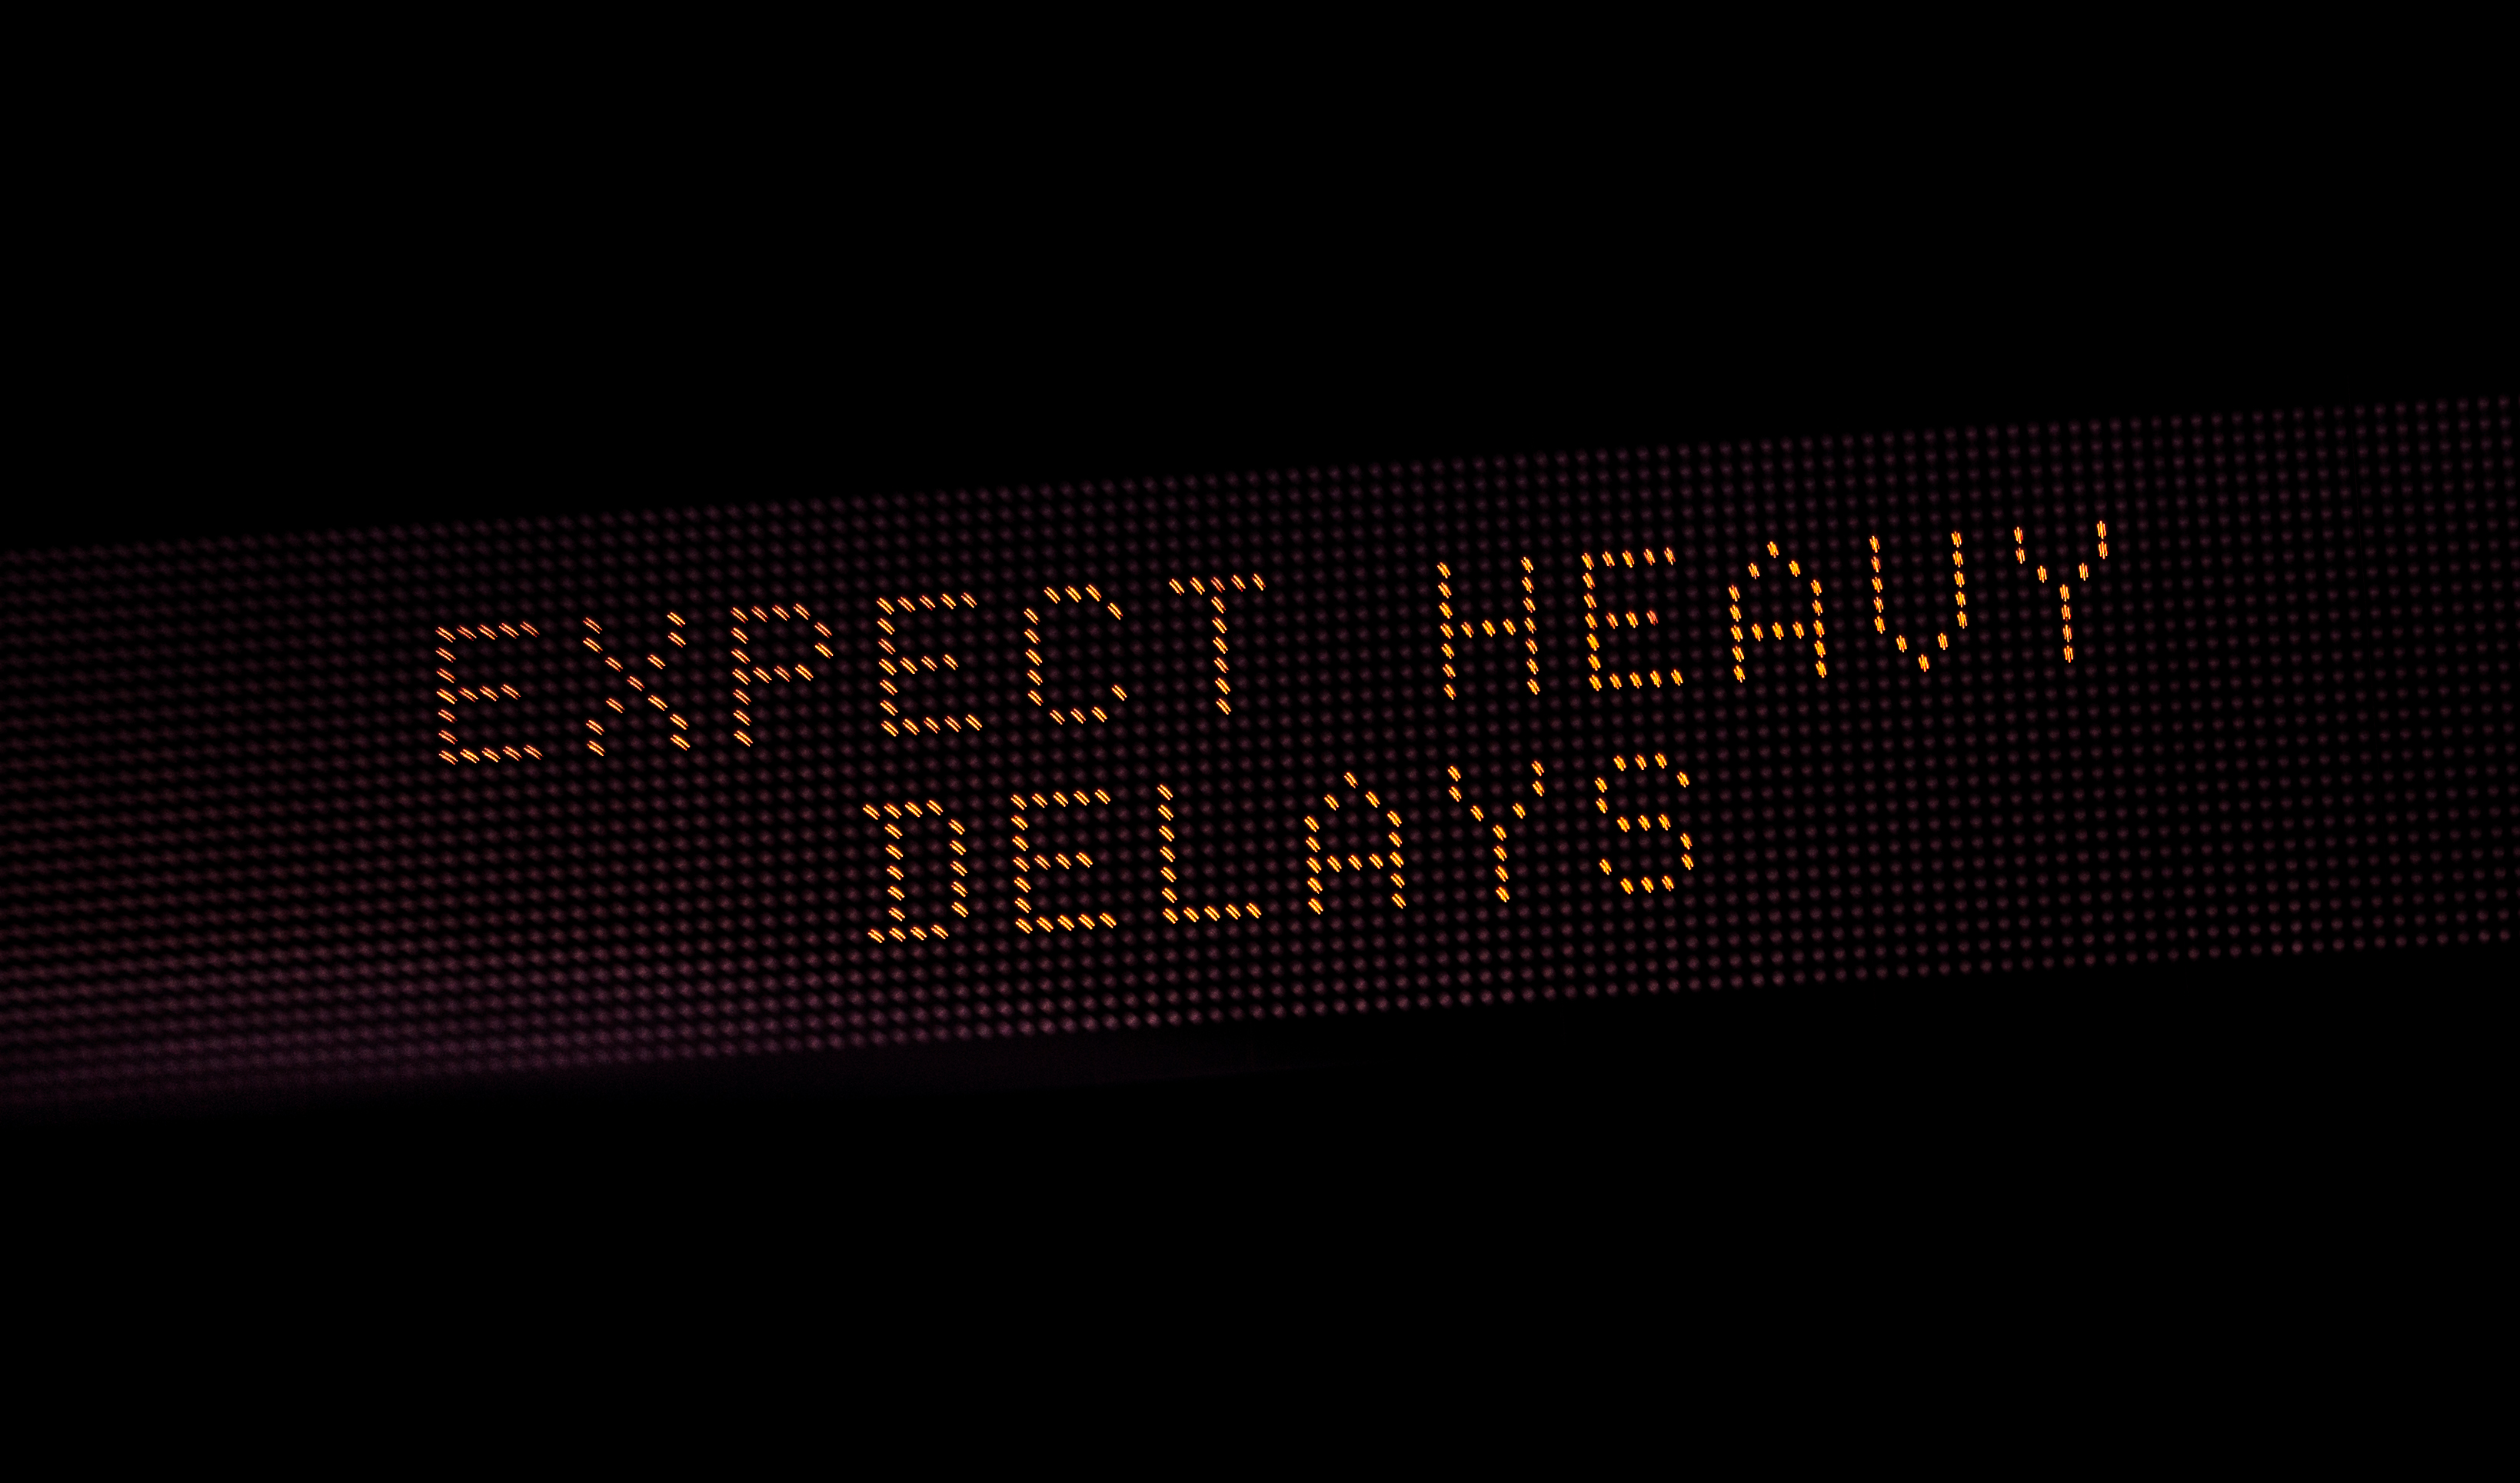 Expected Delays |Electronic Highway Signs Expect Delays